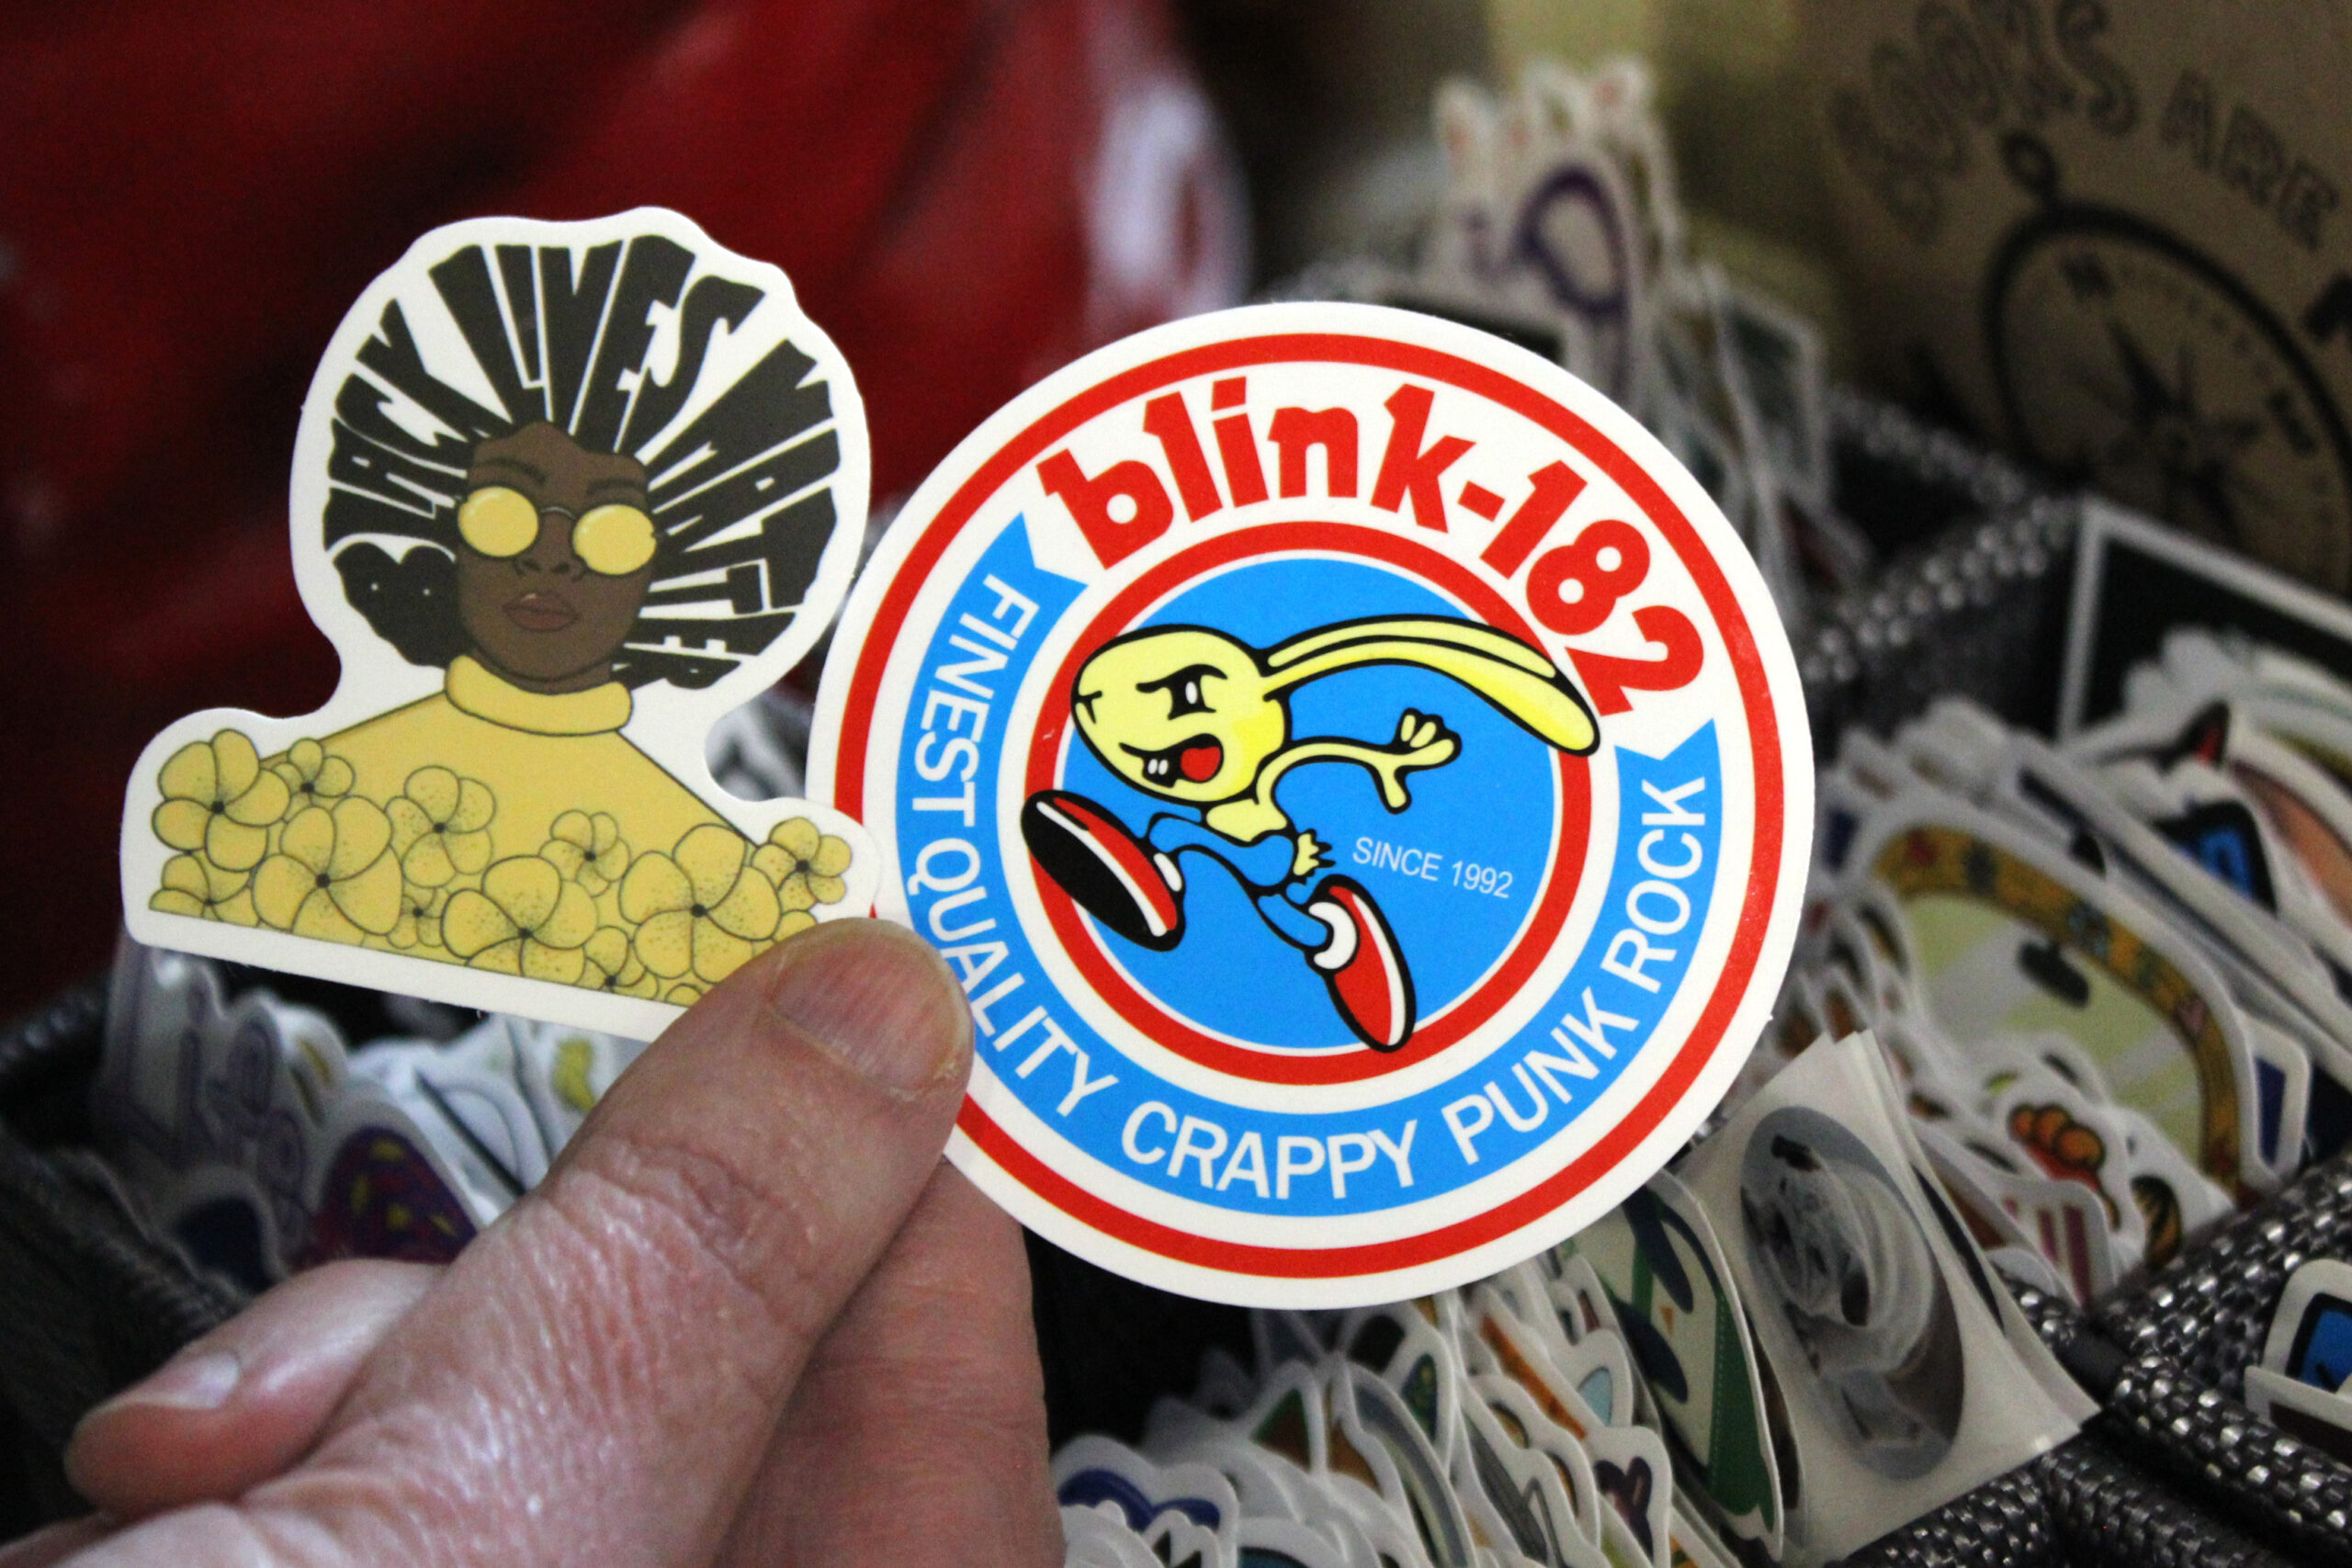 A hand holds two stickers: one with a Black Lives Matter design and the other a Blink-182 design.